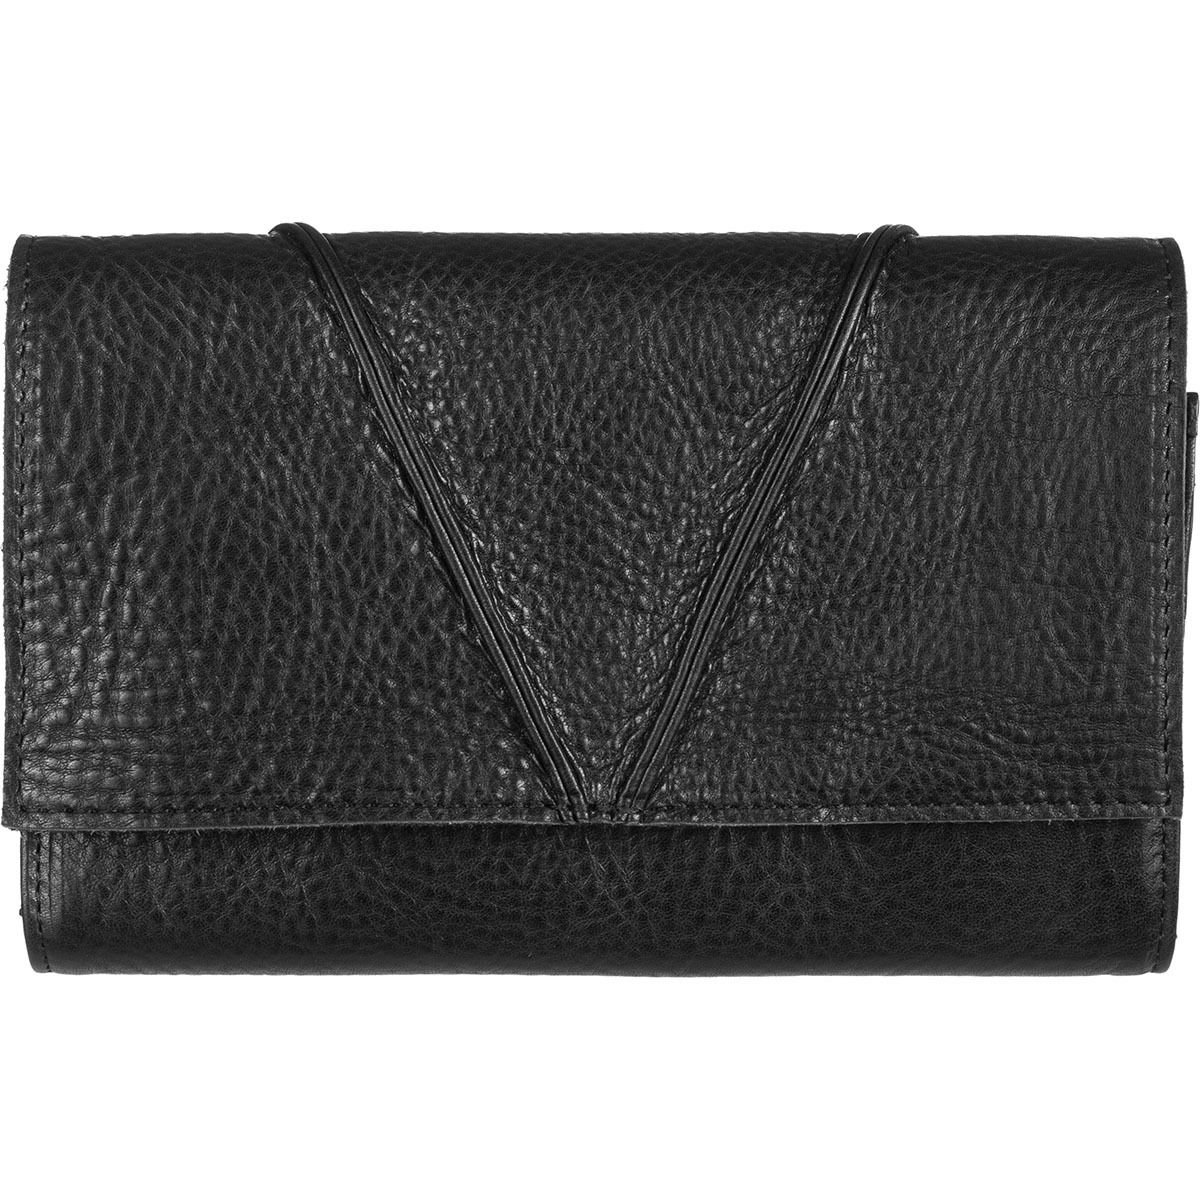 Elk Accessories Lennik Wallet - Women's Black, One Size